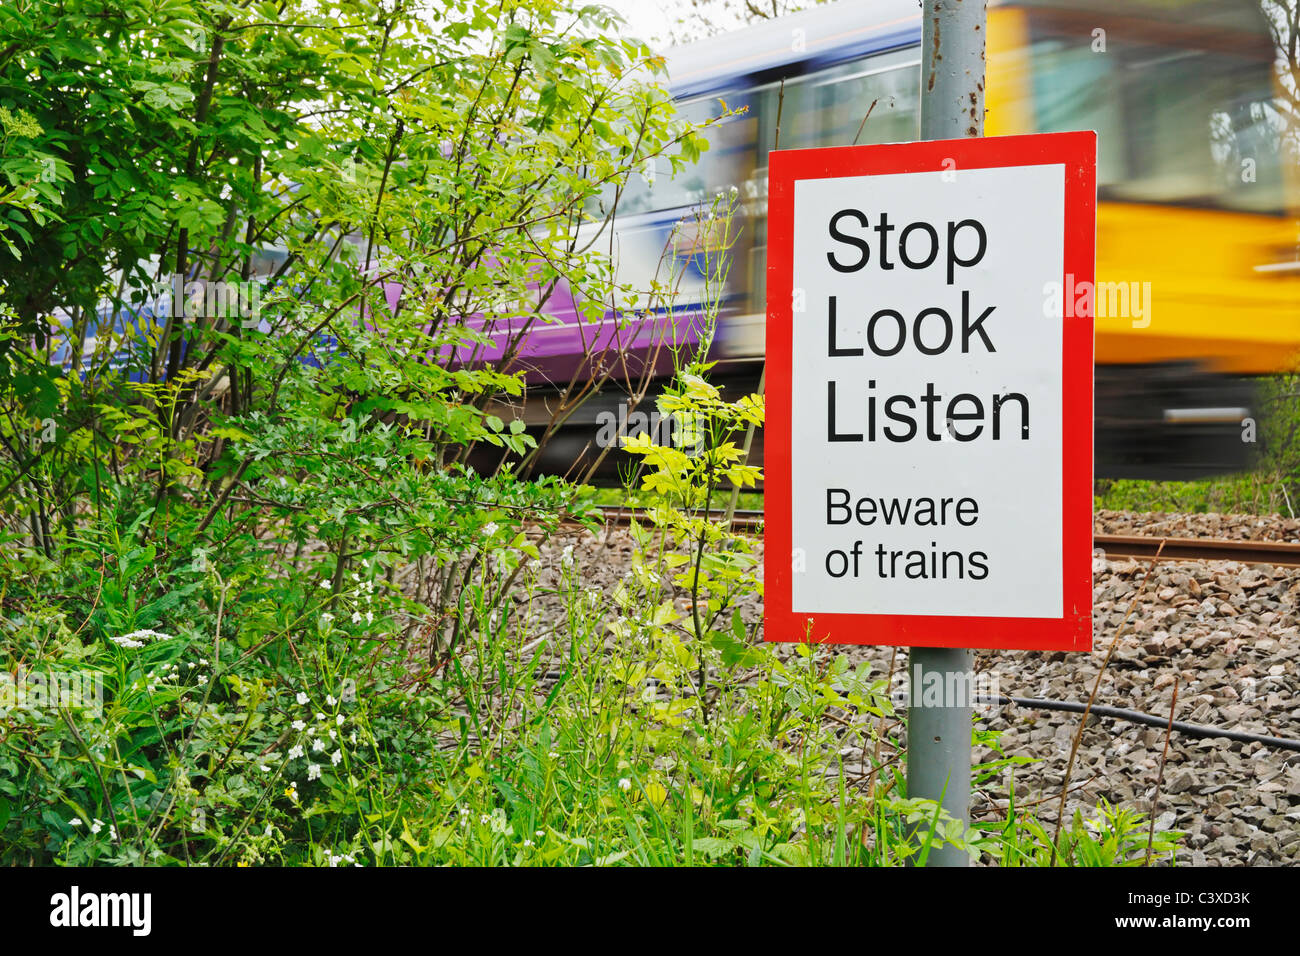 Northern Rail train passing pedestrian crossing point. England, United Kingdom - Stock Image